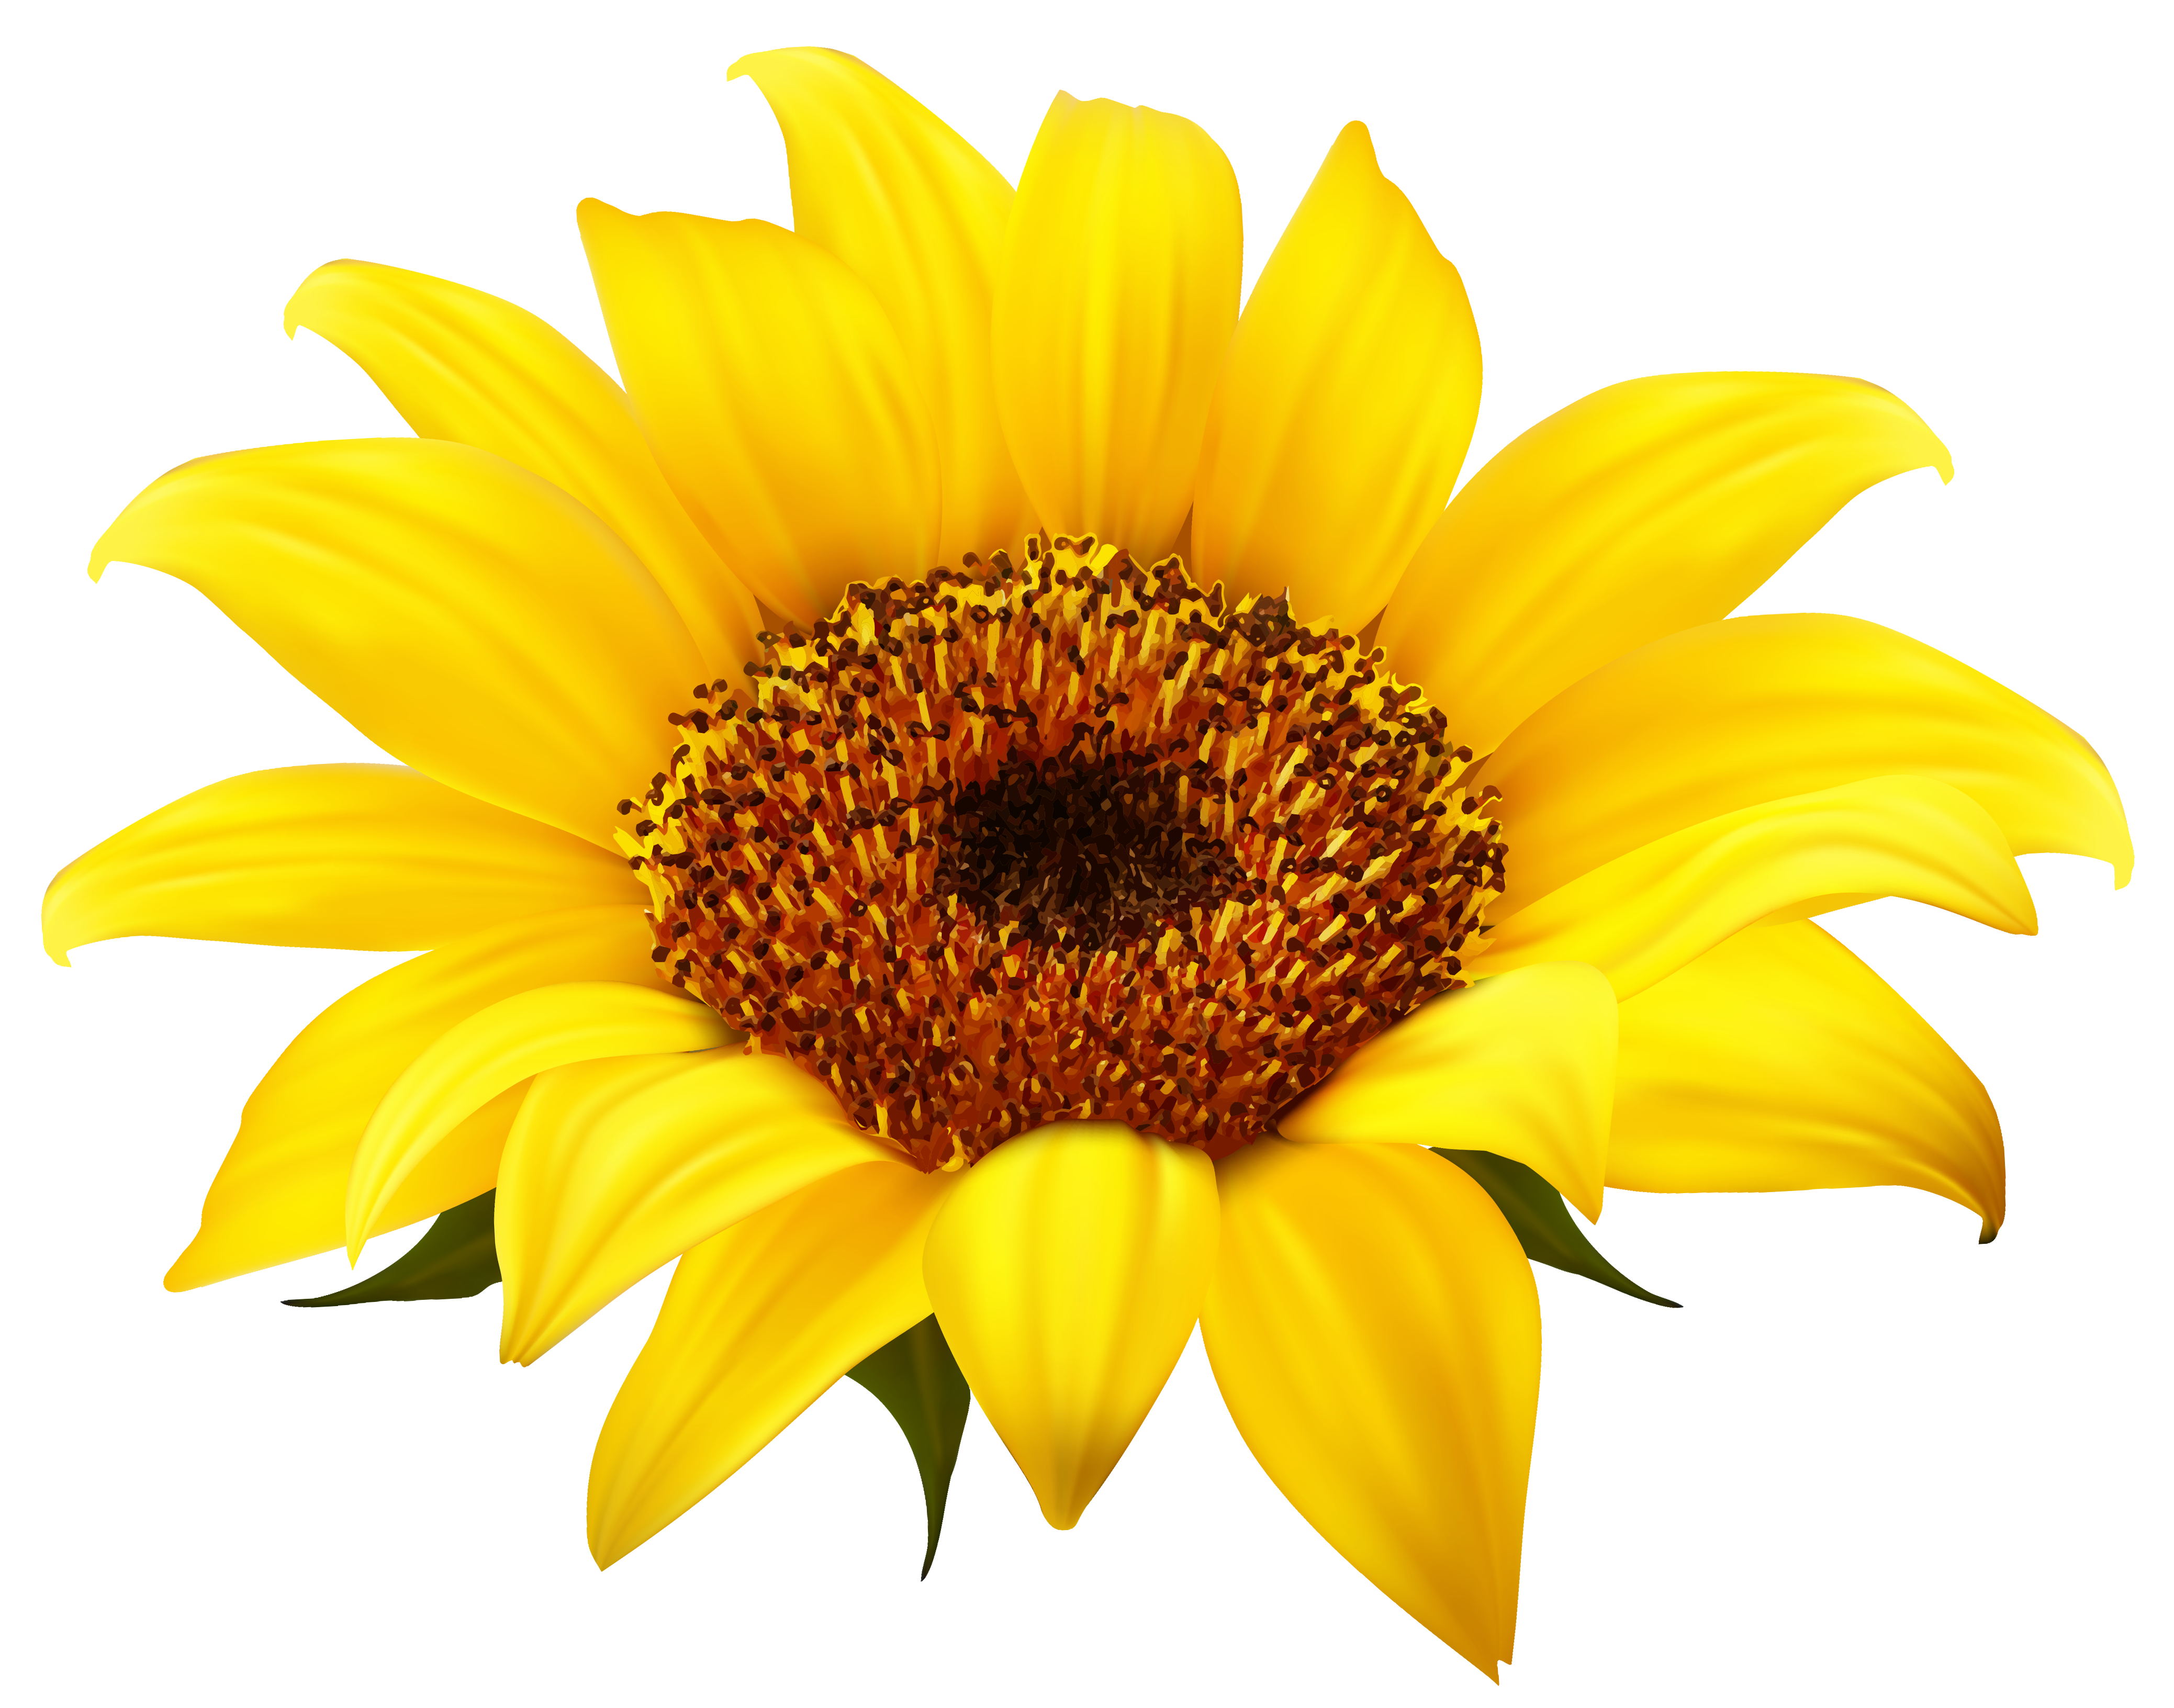 royalty free stock Sunflowers clipart rose. Sunflower png image gallery